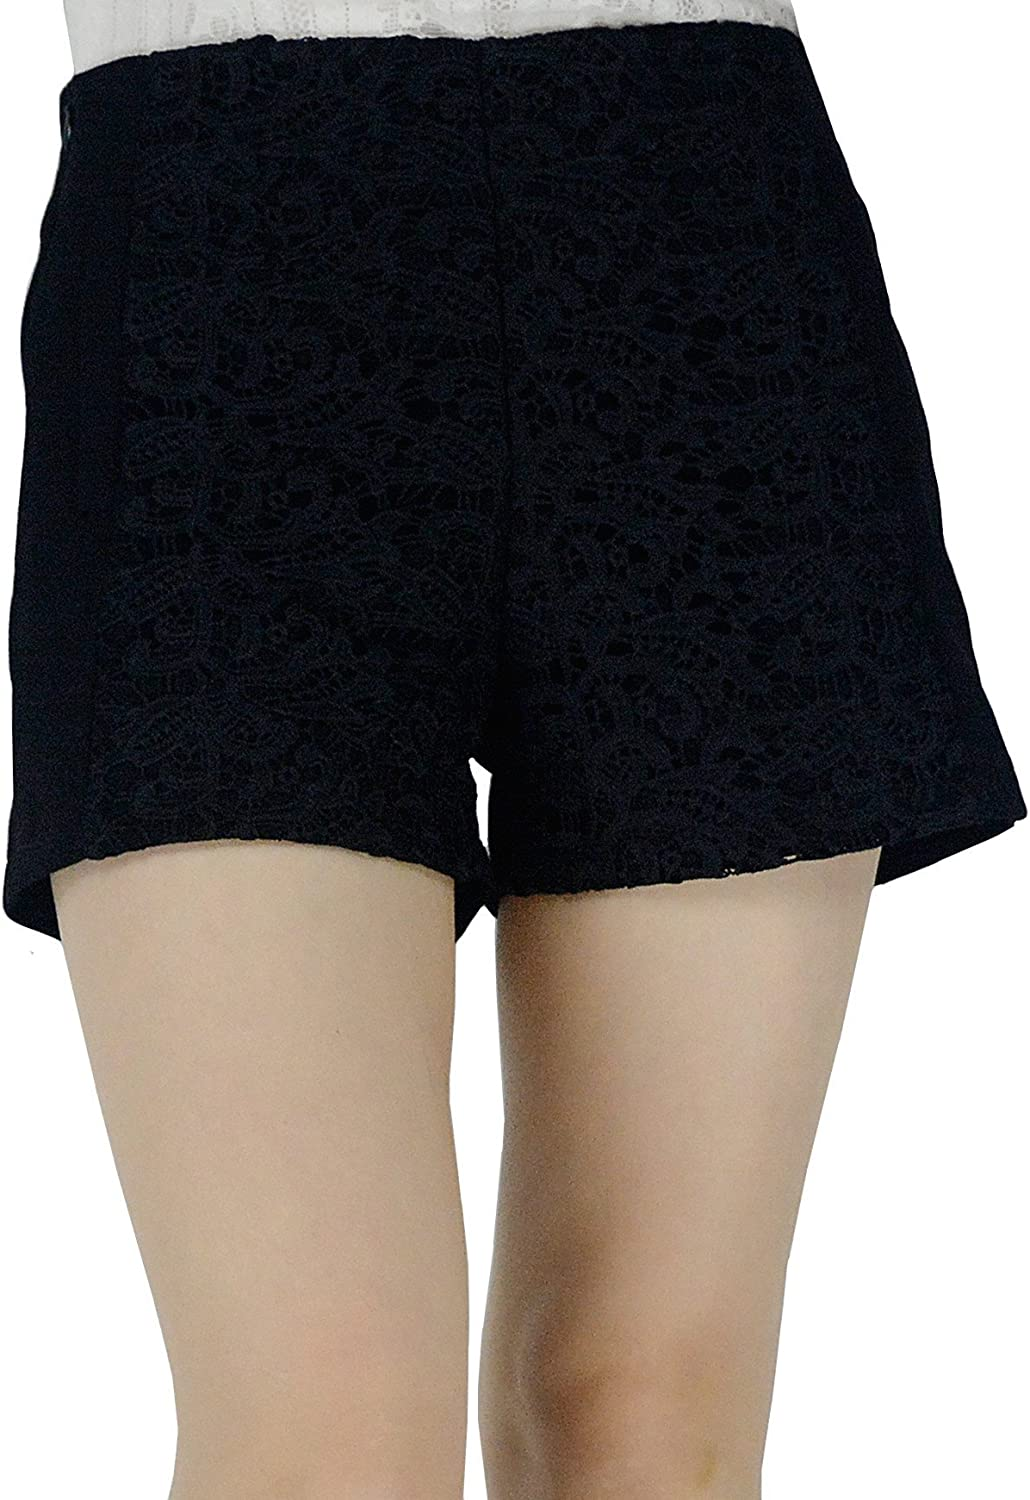 YSJ Women's Embroidered Floral Lace Zipper Closure Mini Shorts 5 Sizes